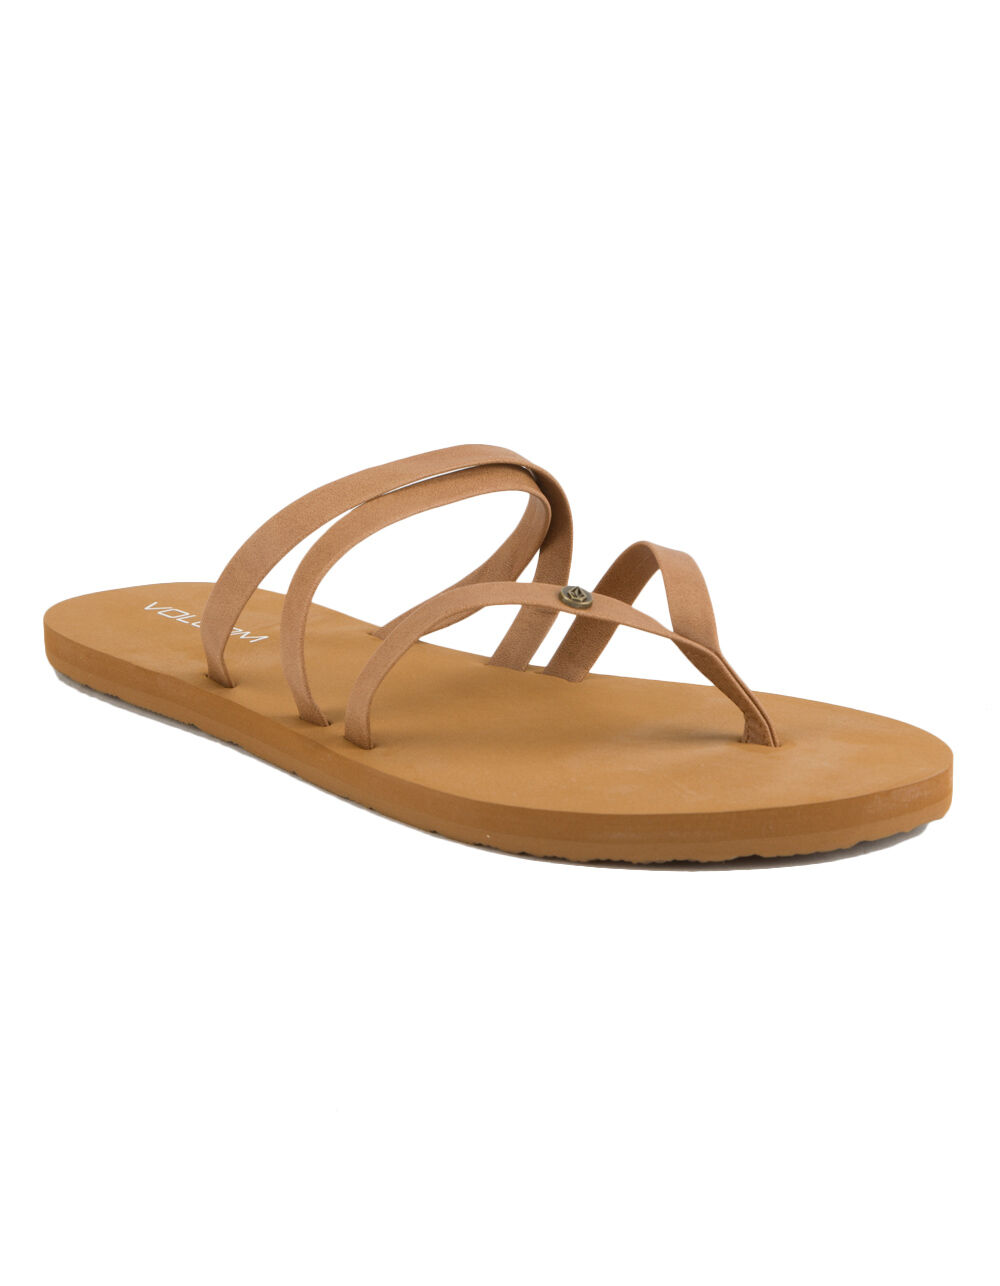 VOLCOM EASY BREEZY TAN SANDALS